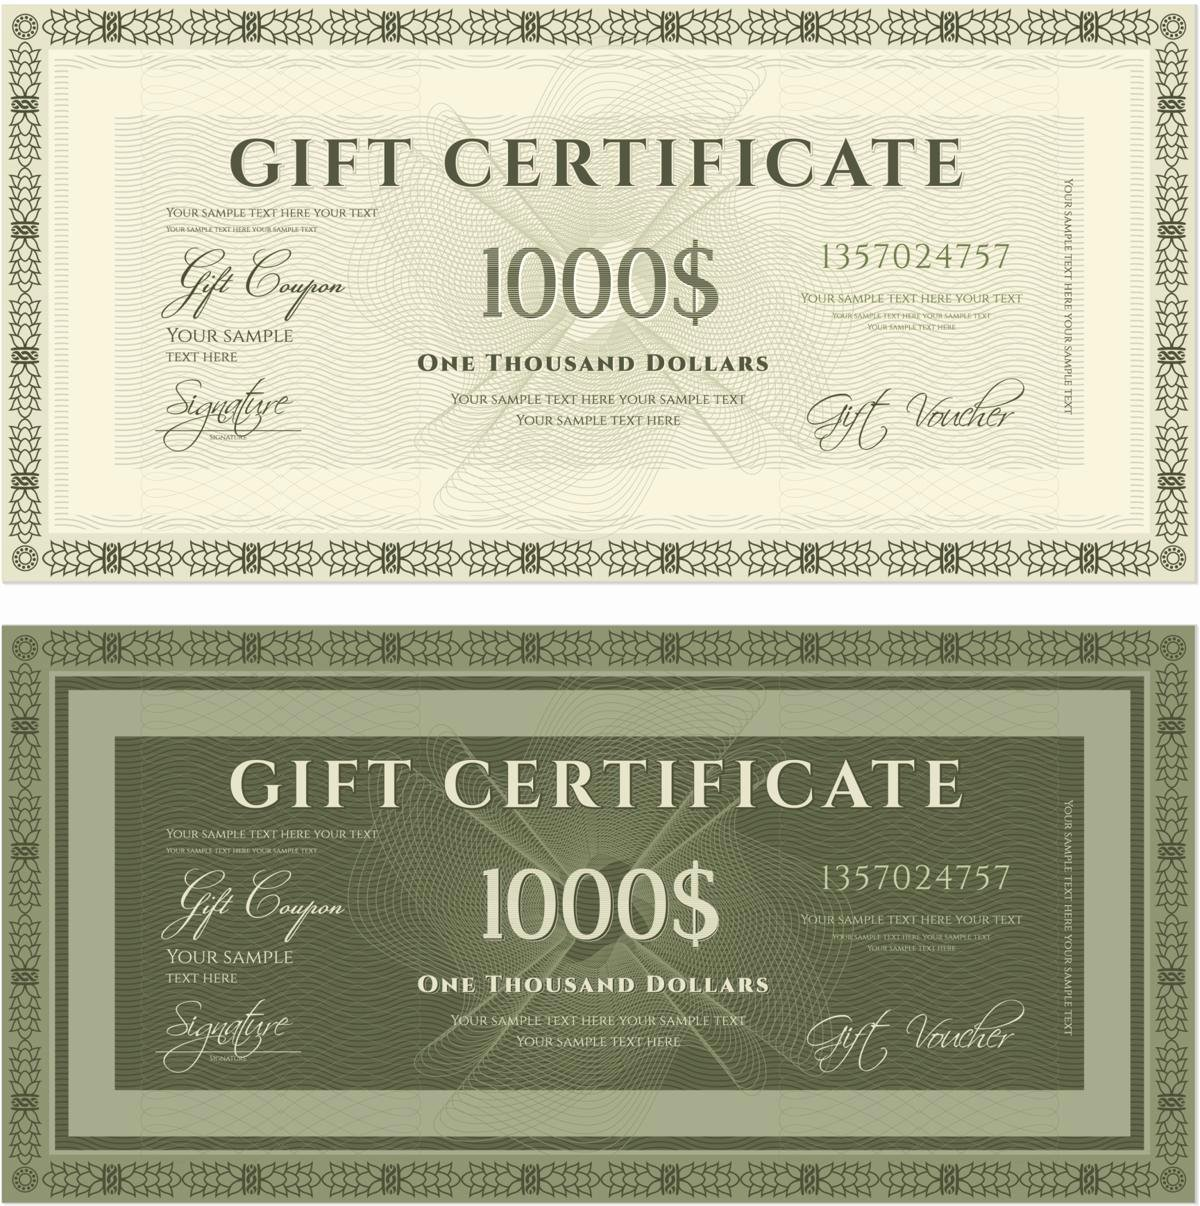 Samples Of Gift Certificate Beautiful Sample Wordings for Gift Certificates You Ll Want to Copy now